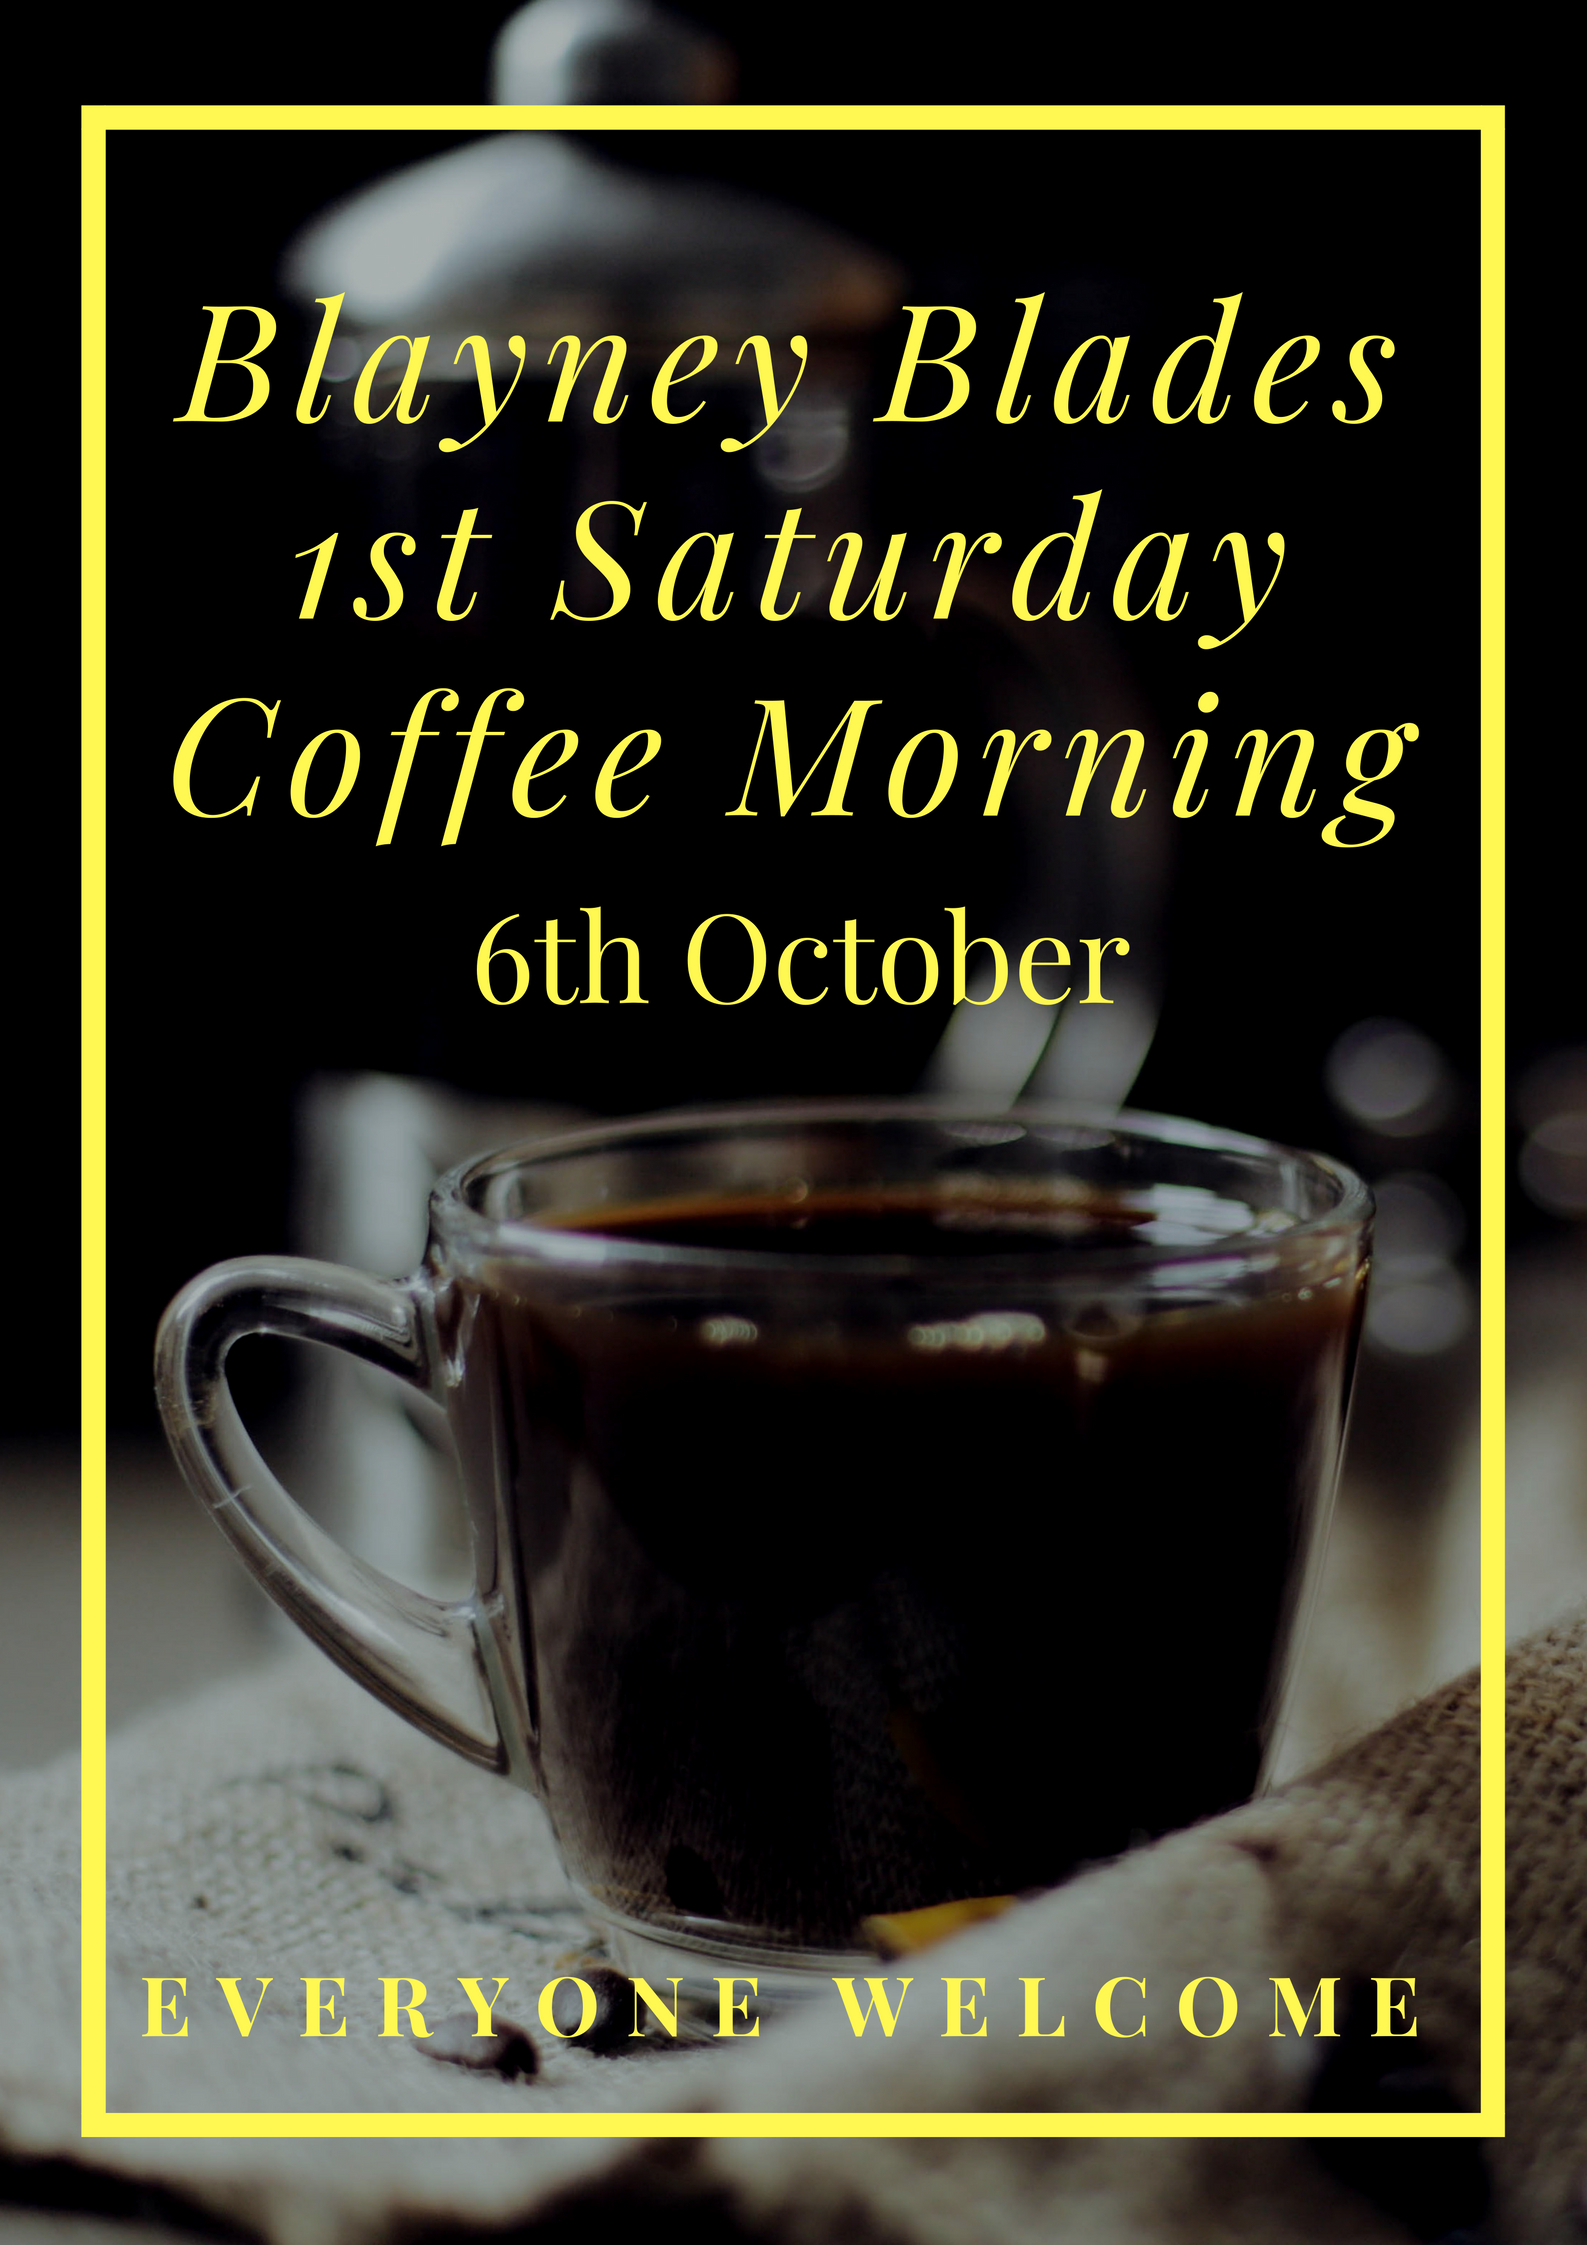 News Castleblayney Be The First To Review Recycled Circuit Board Coaster Cancel Blayney Blades Will Host Saturday Coffee Morning On 6th October At 1130am In Parish Centre